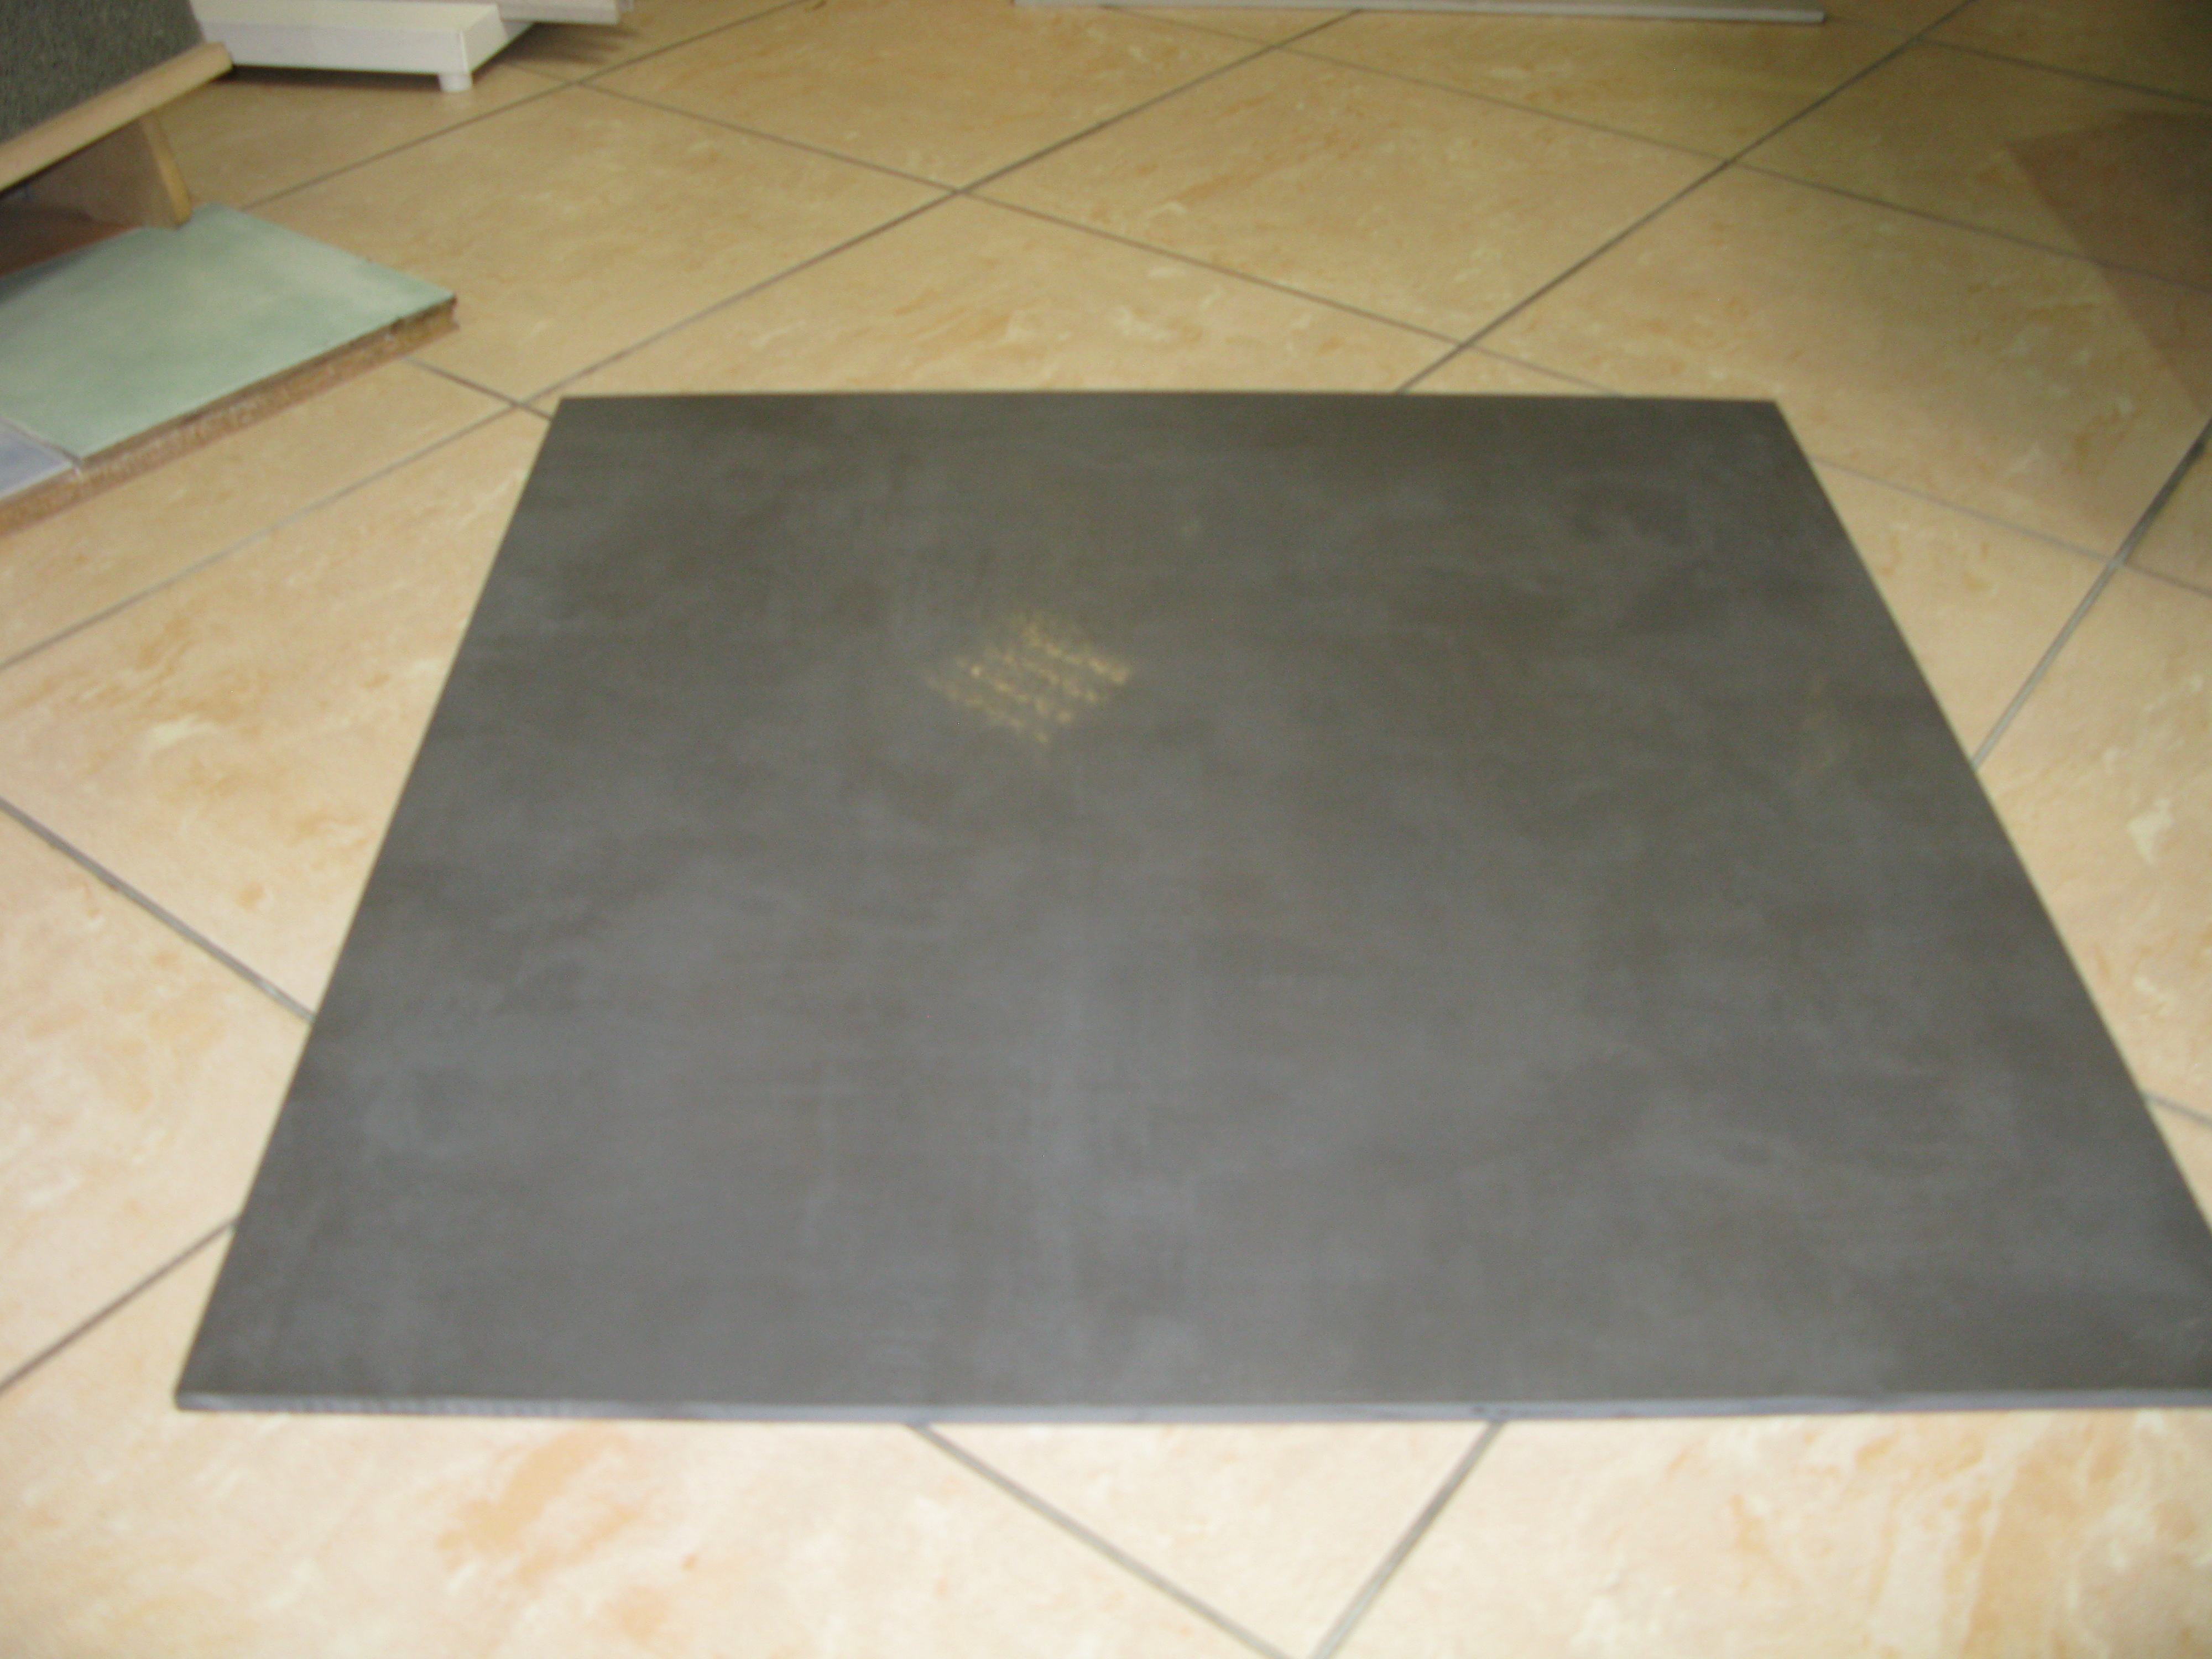 Carrelage 80x80 cementi rectifi lappatto todagres for Carrelage 50x50 gris clair